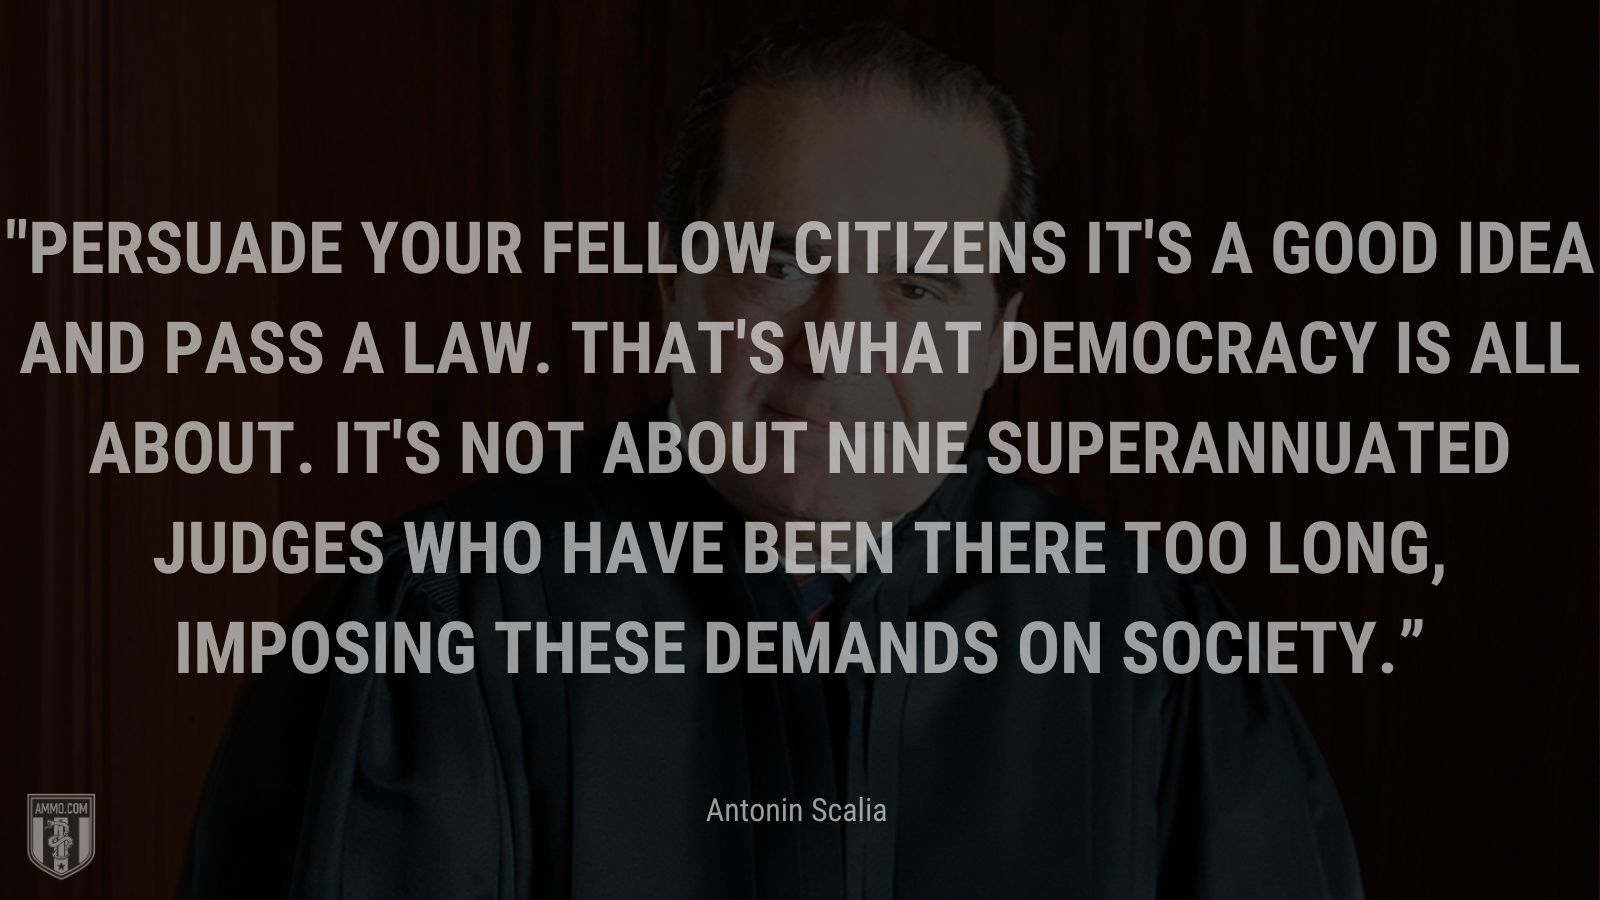 """""""Persuade your fellow citizens it's a good idea and pass a law. That's what democracy is all about. It's not about nine superannuated judges who have been there too long, imposing these demands on society."""" - Antonin Scalia"""